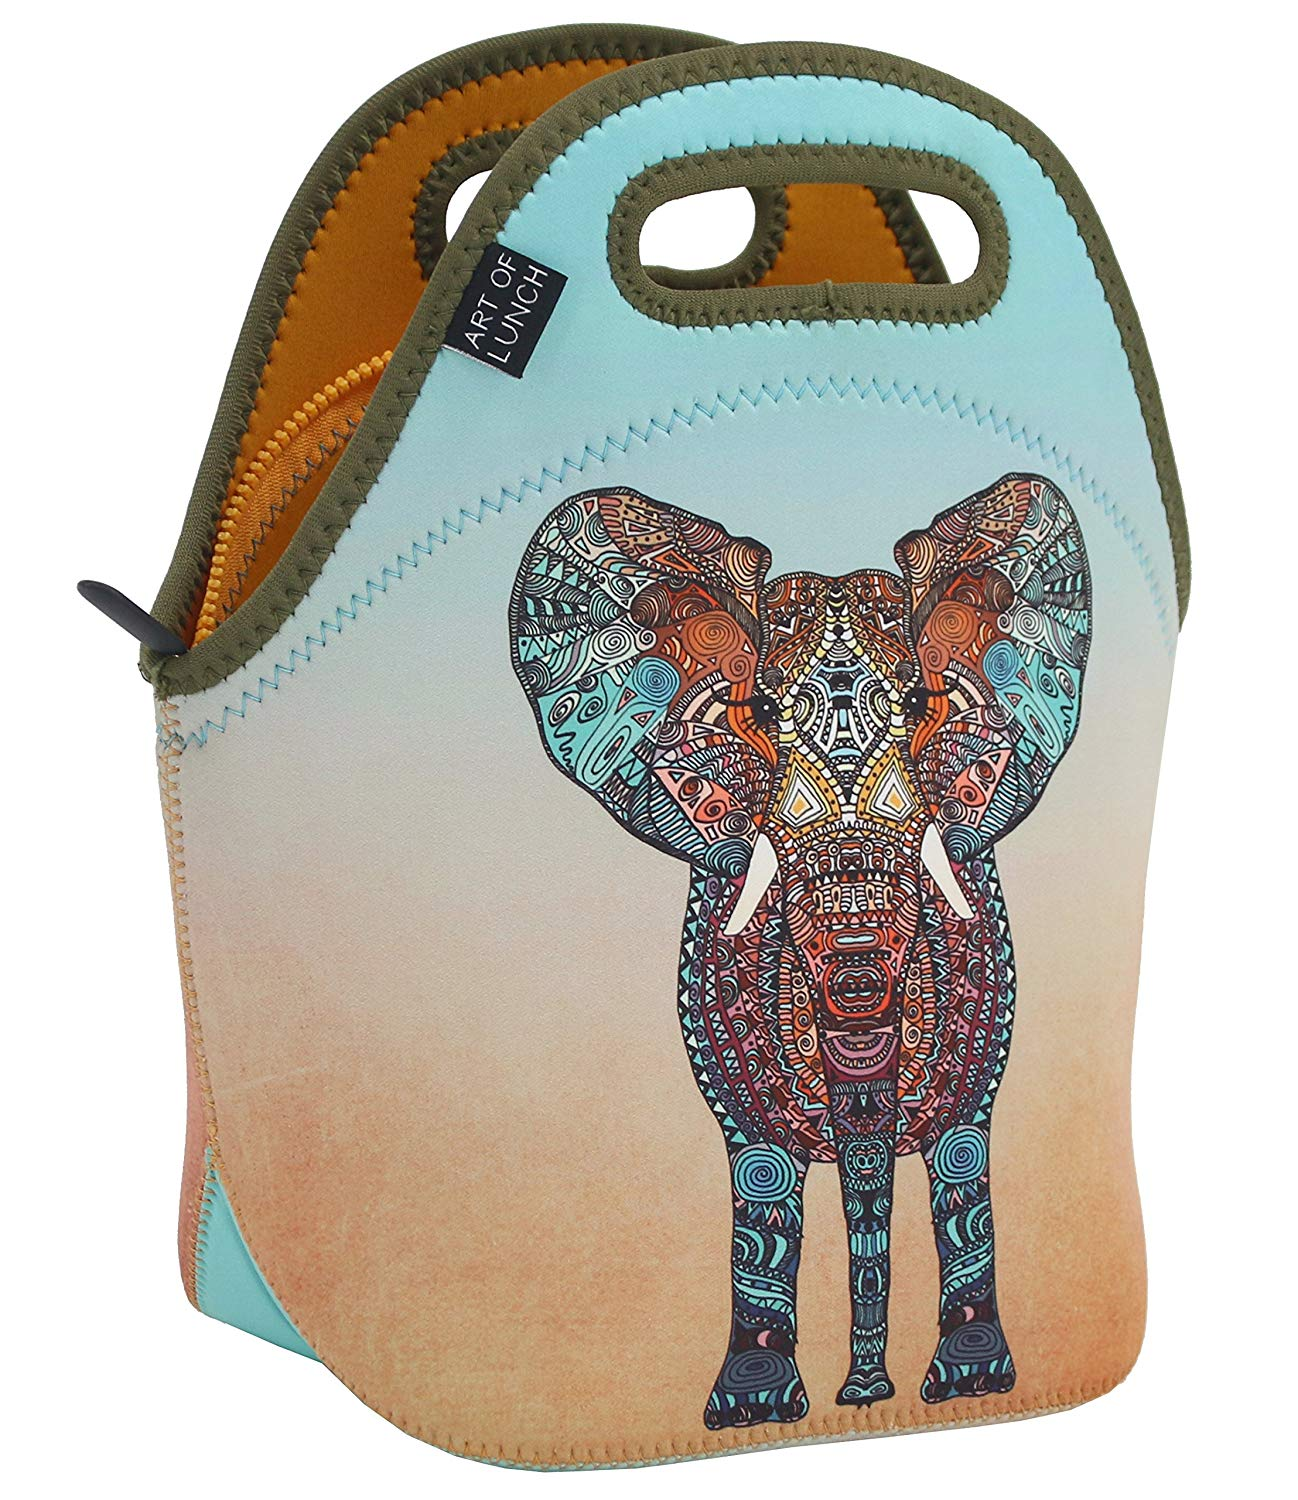 Art of Lunch Insulated Neoprene Lunch Bag